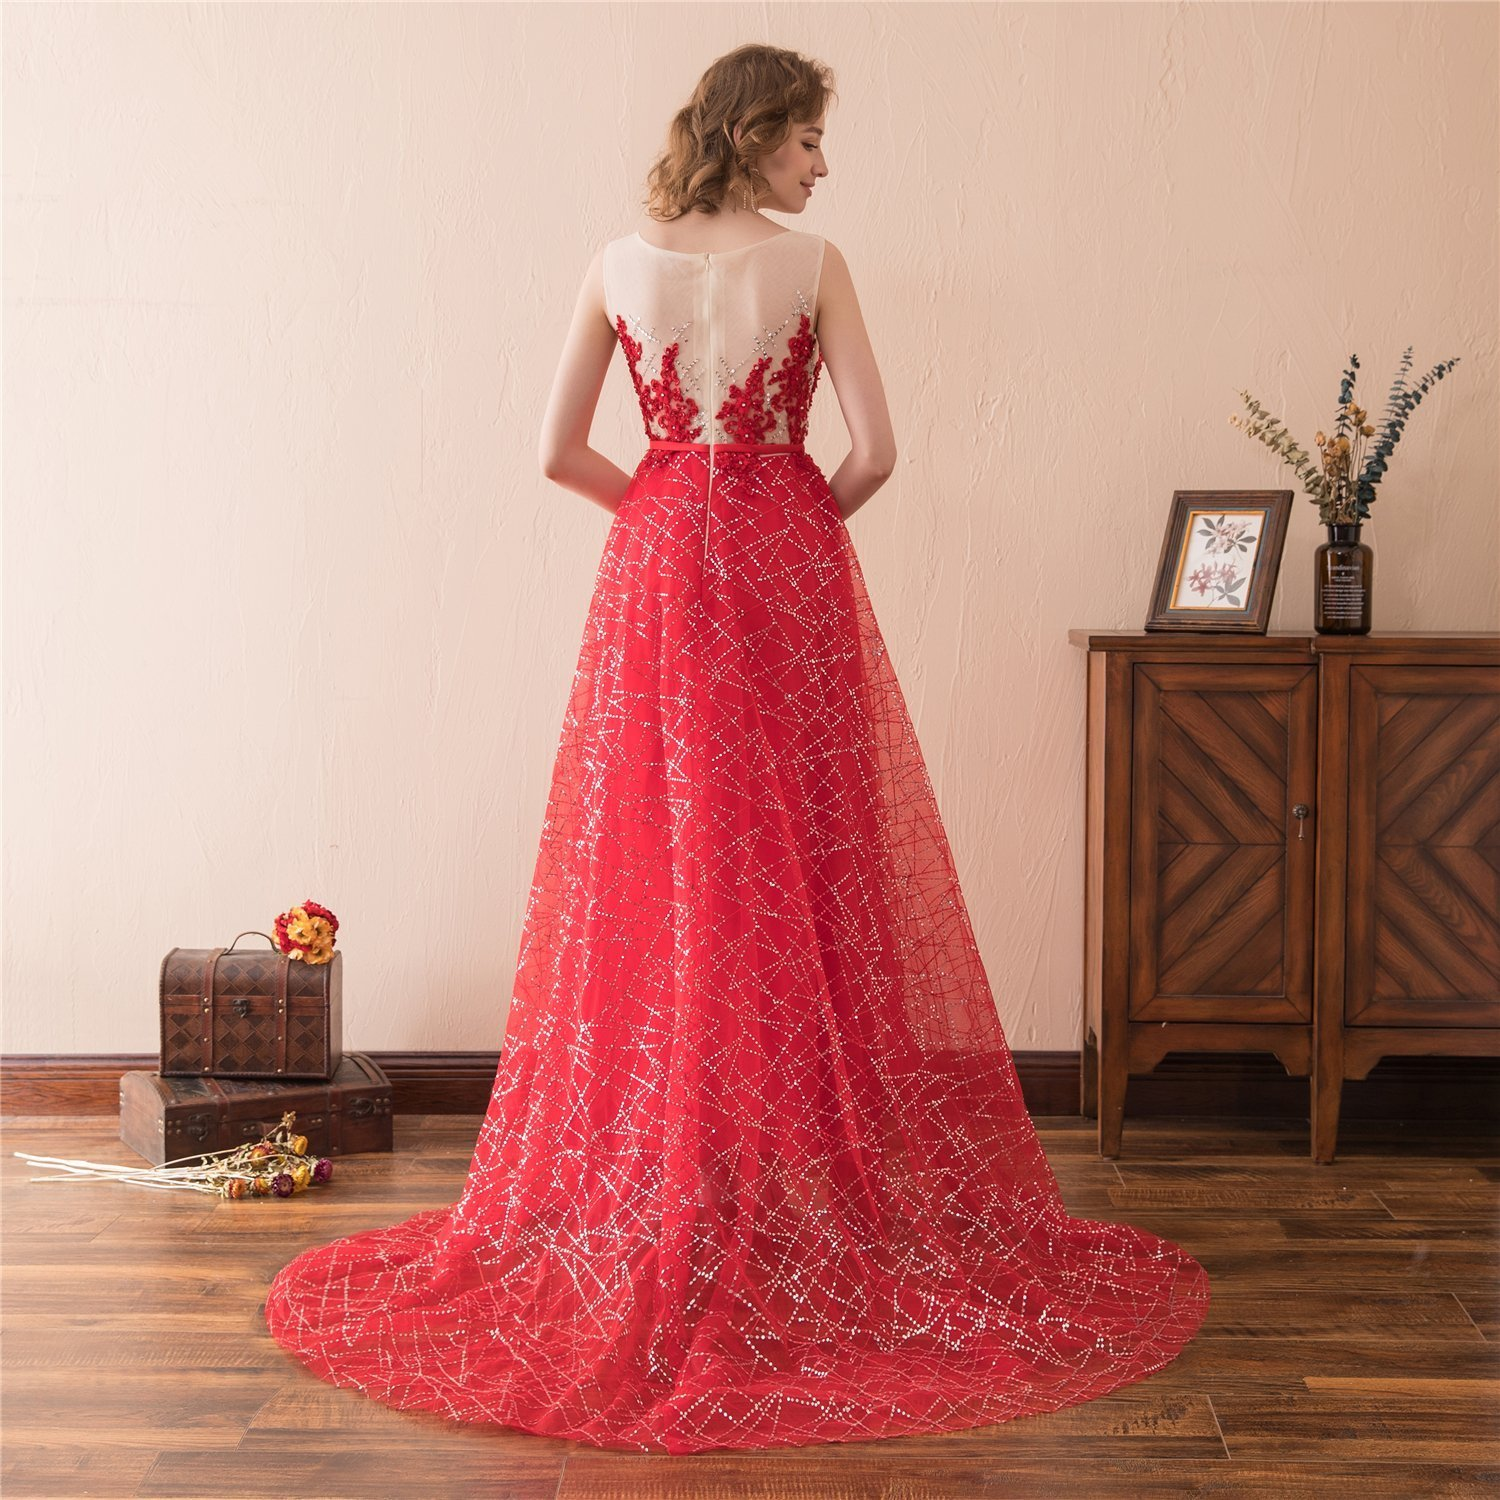 Women's Scoop Neck Long Sequins Prom Dresses Lace Appliques Evening Party Gowns